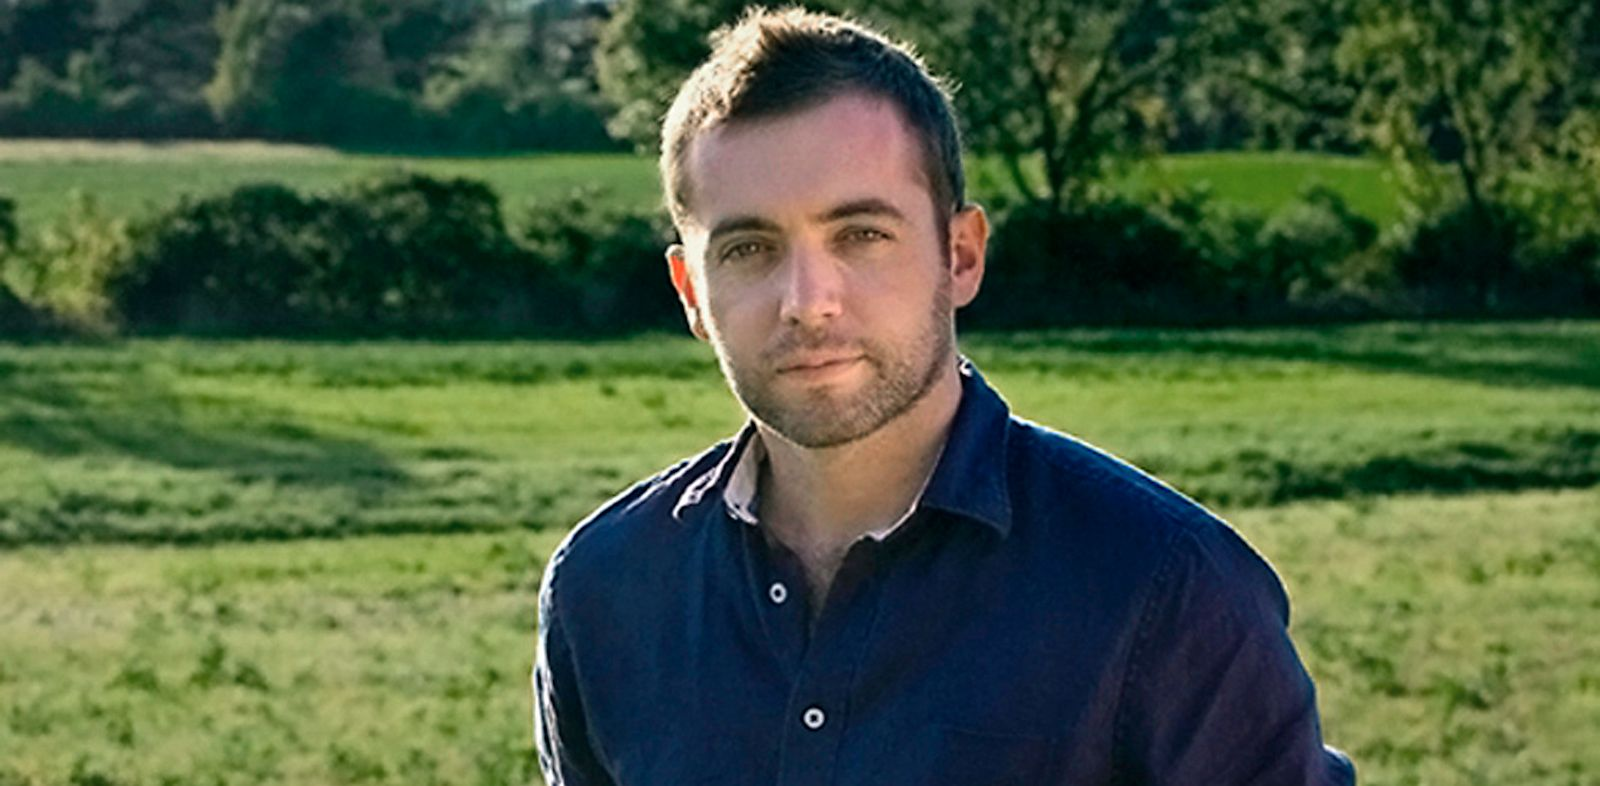 PHOTO: Michael Hastings